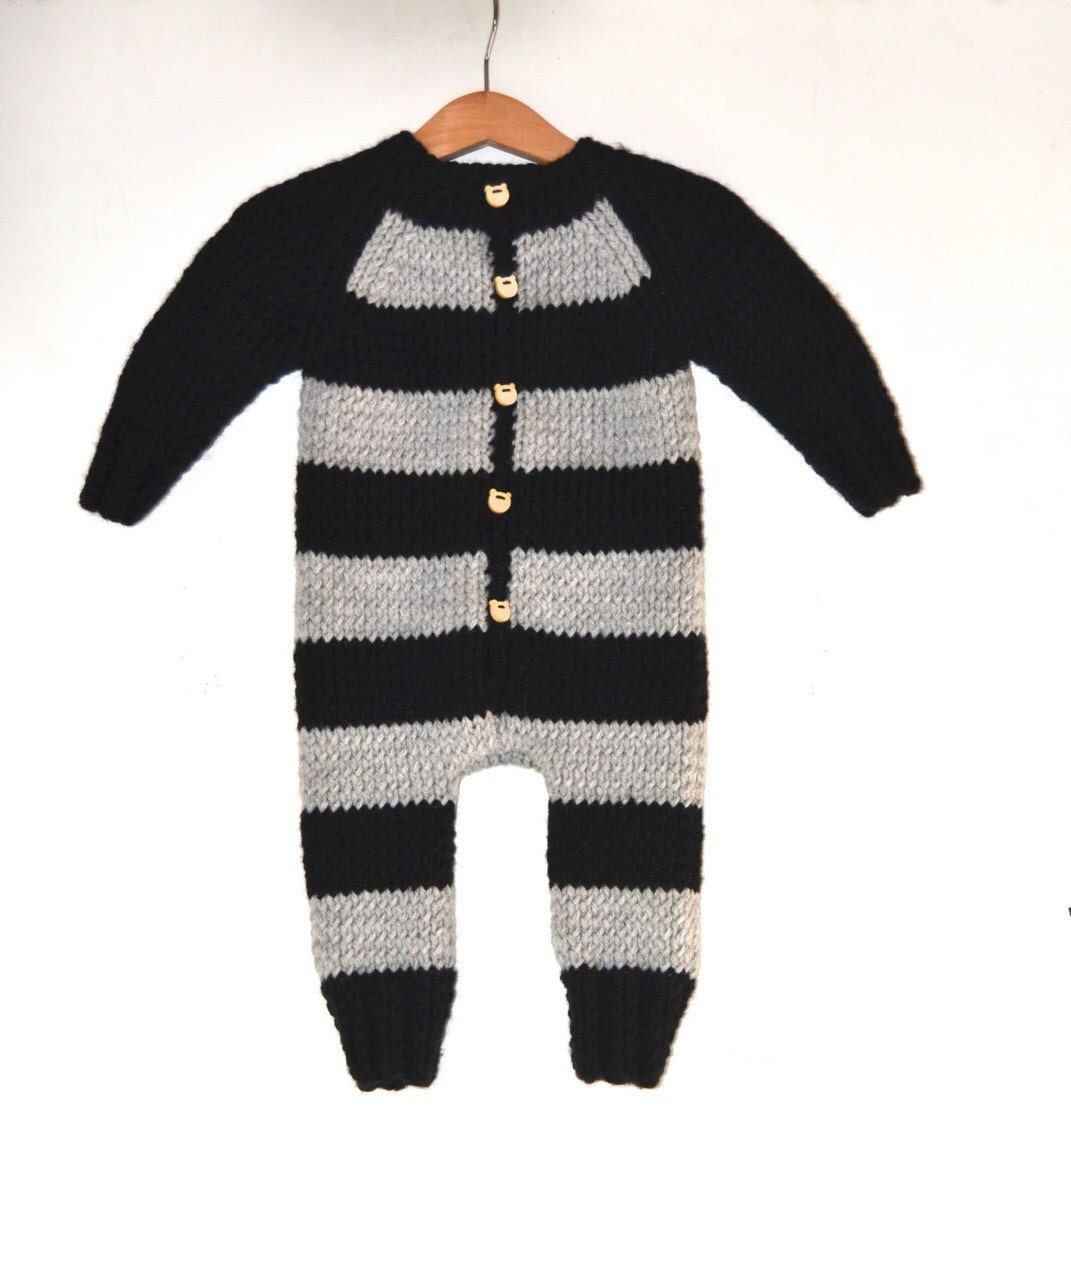 Hand Knitted Wool Baby Boy Romper Bodysuit Black And Gray